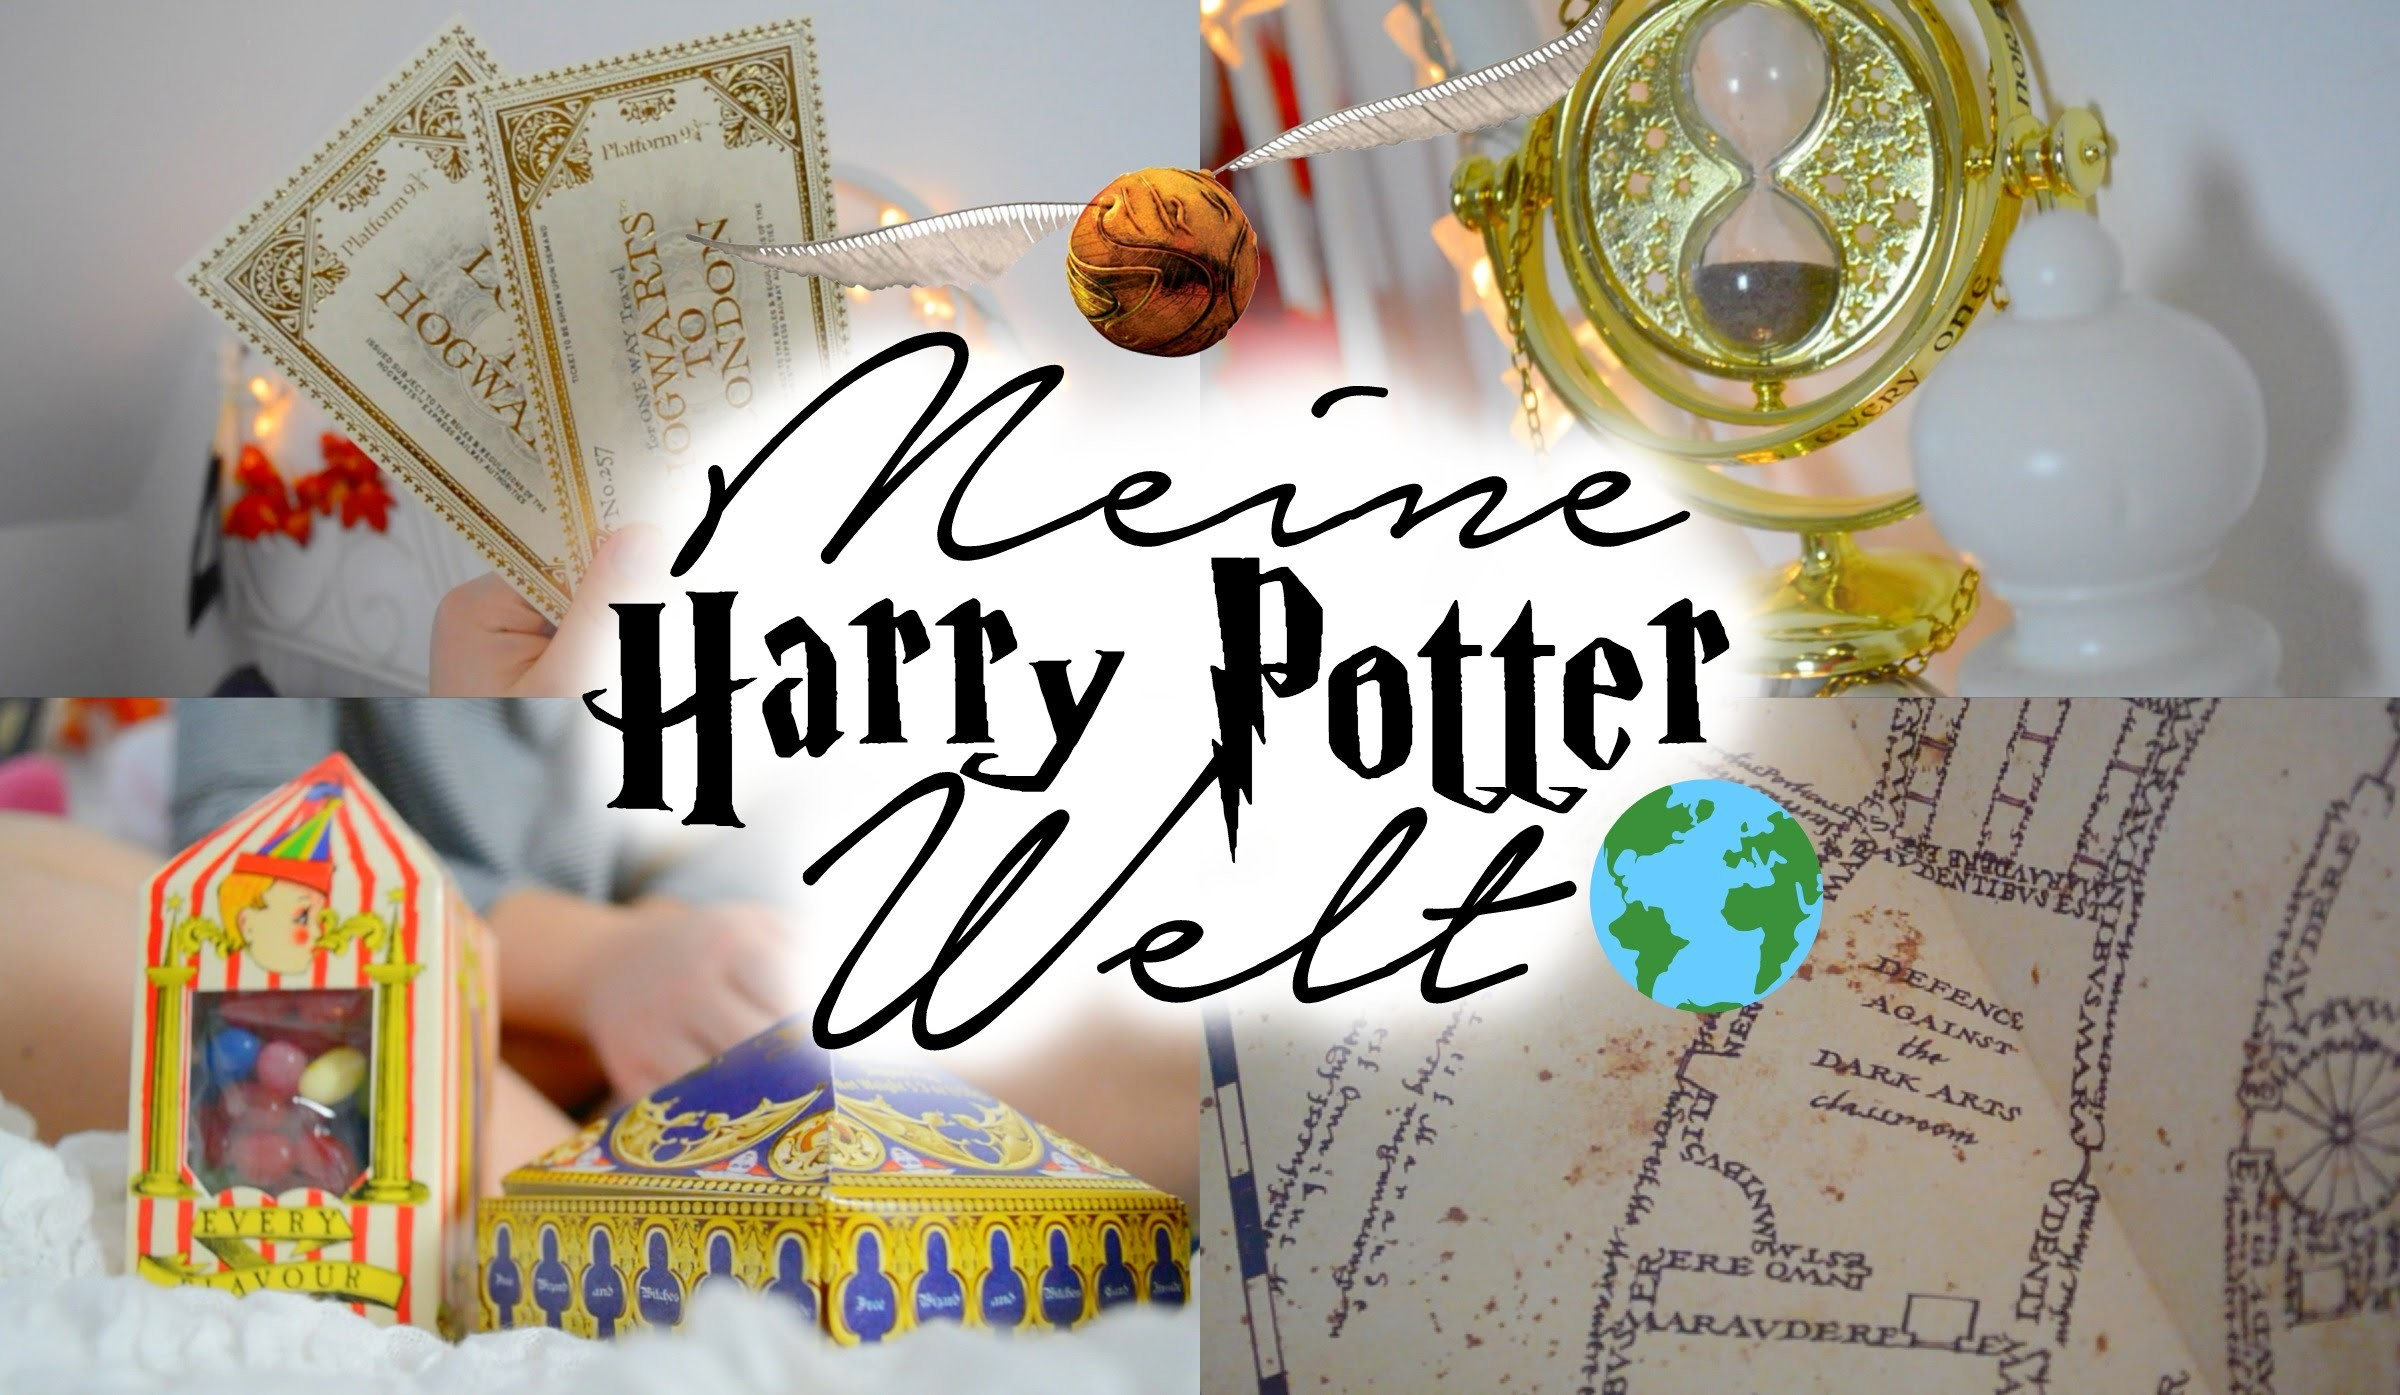 meine harry potter welt fanartikel diy fanfictions my crafts and diy projects. Black Bedroom Furniture Sets. Home Design Ideas